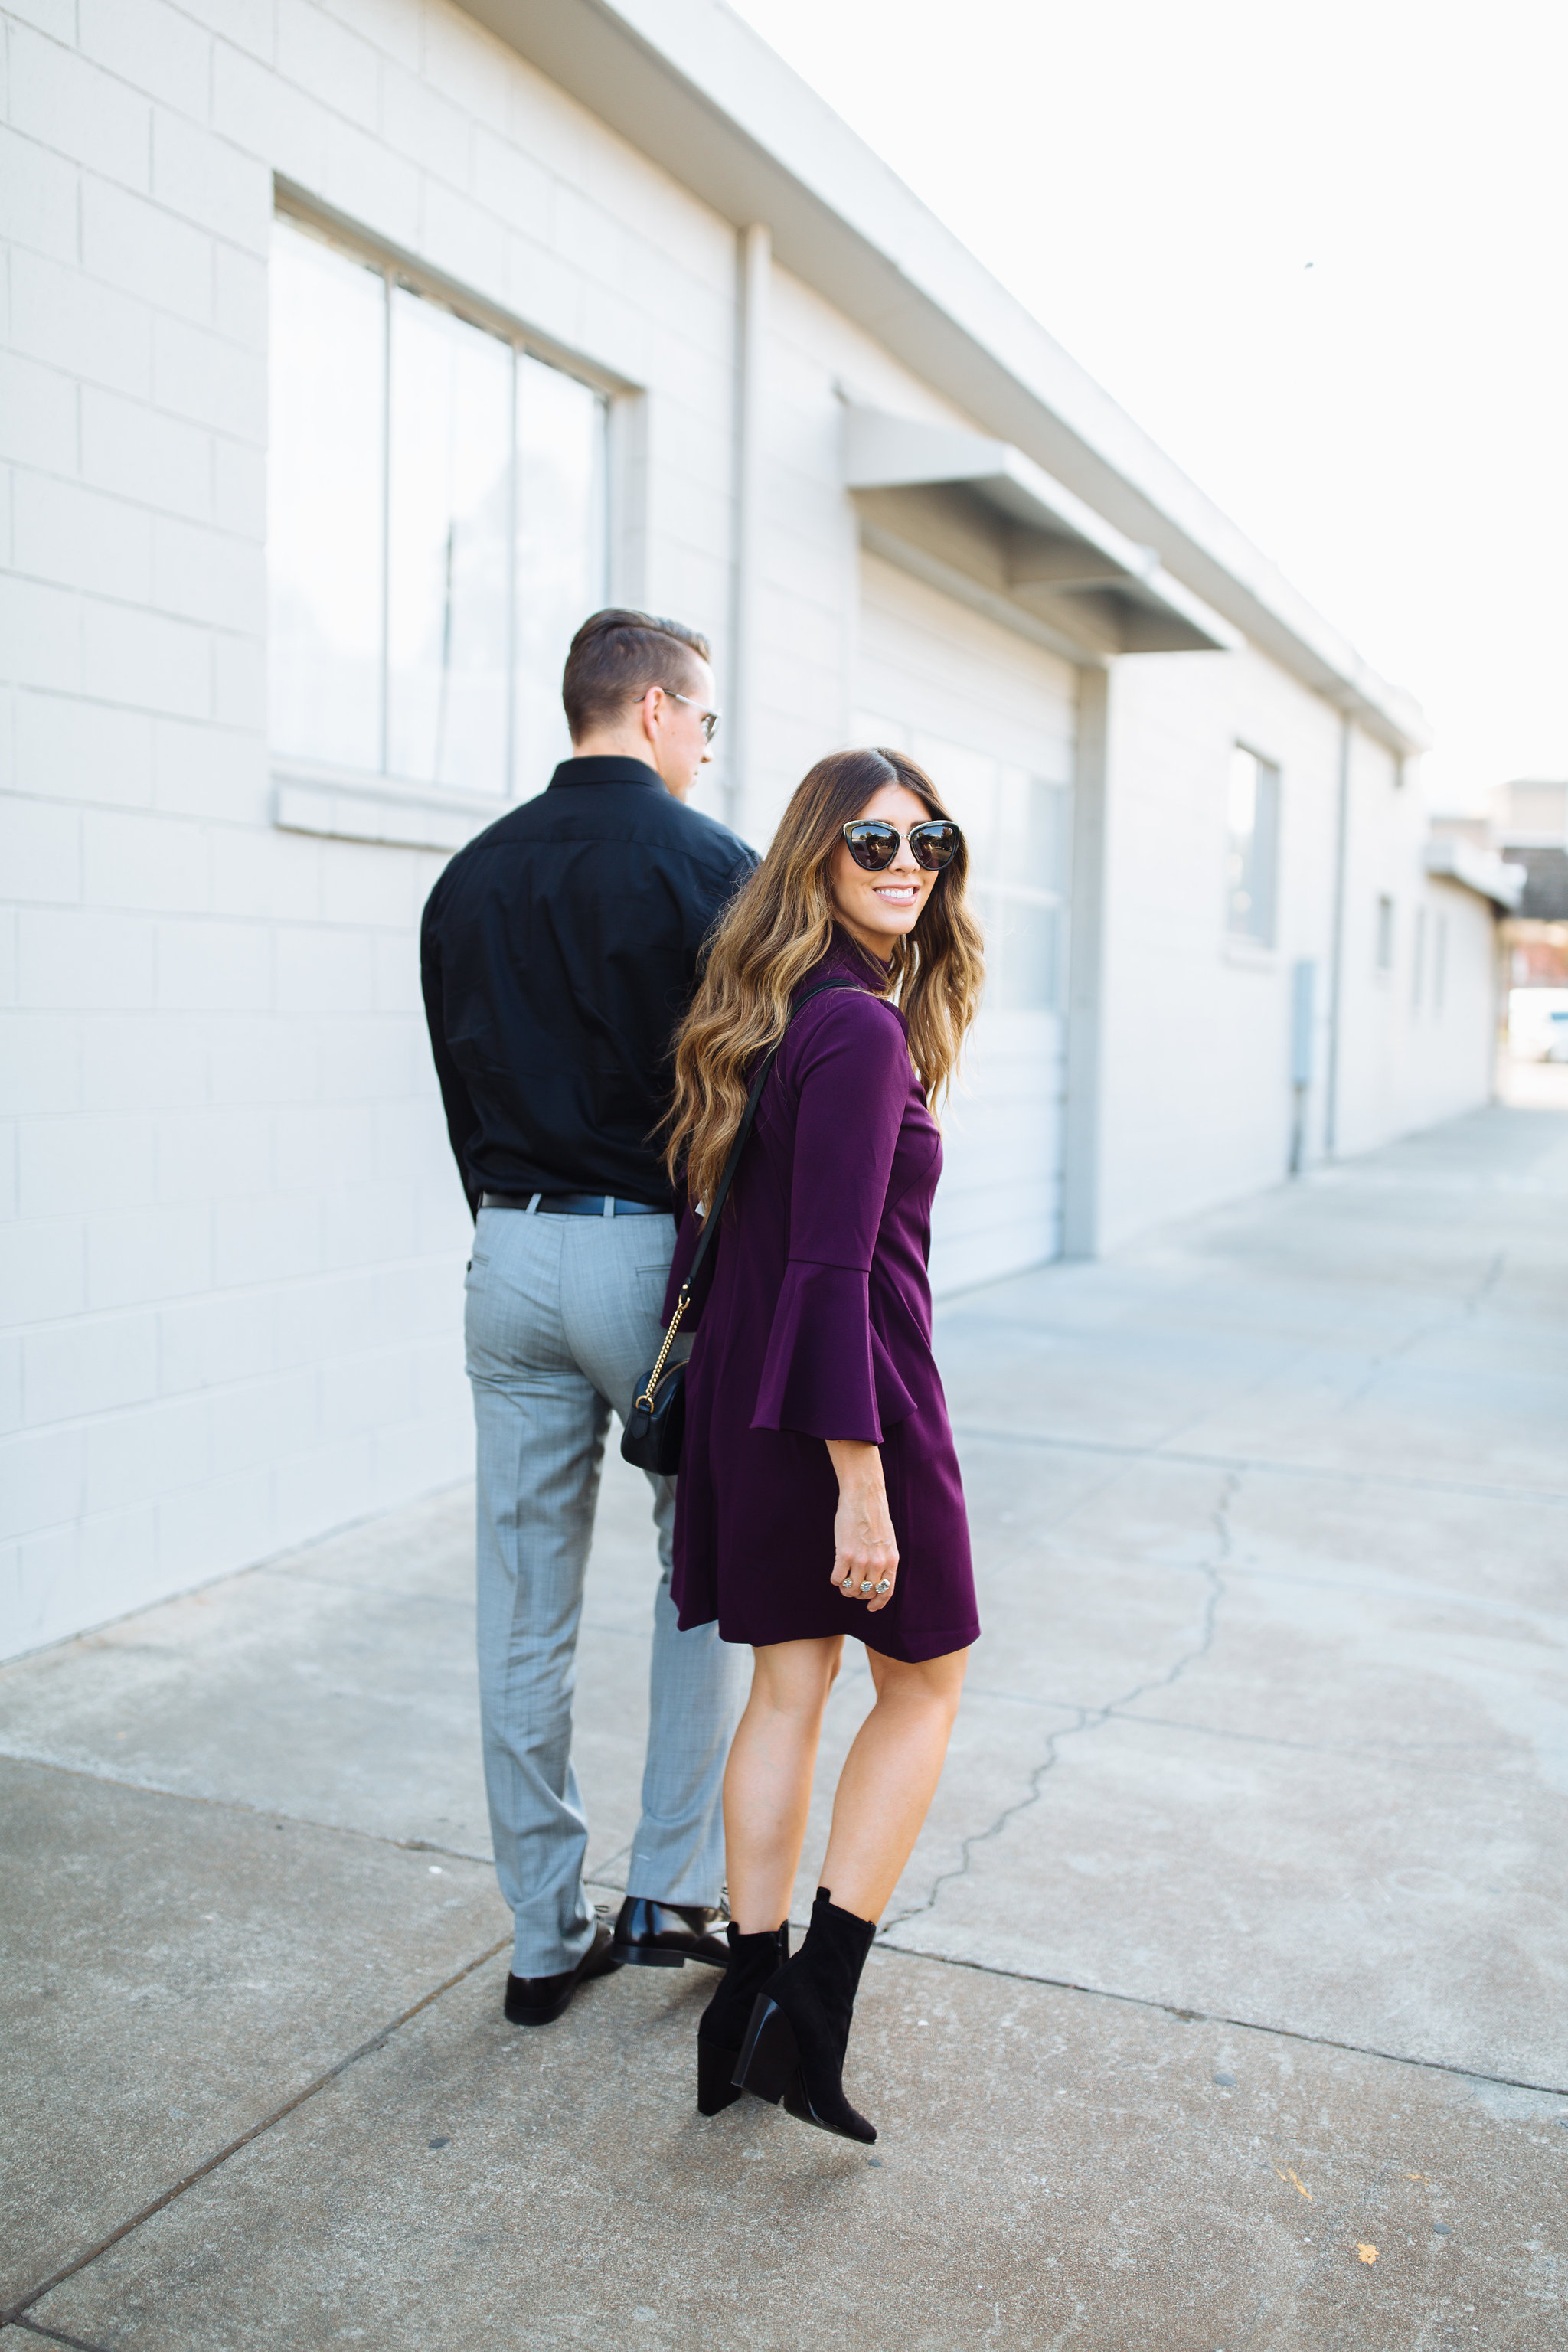 Nordstrom, Ted Baker Menswear, Couples Look, Fall Fashion